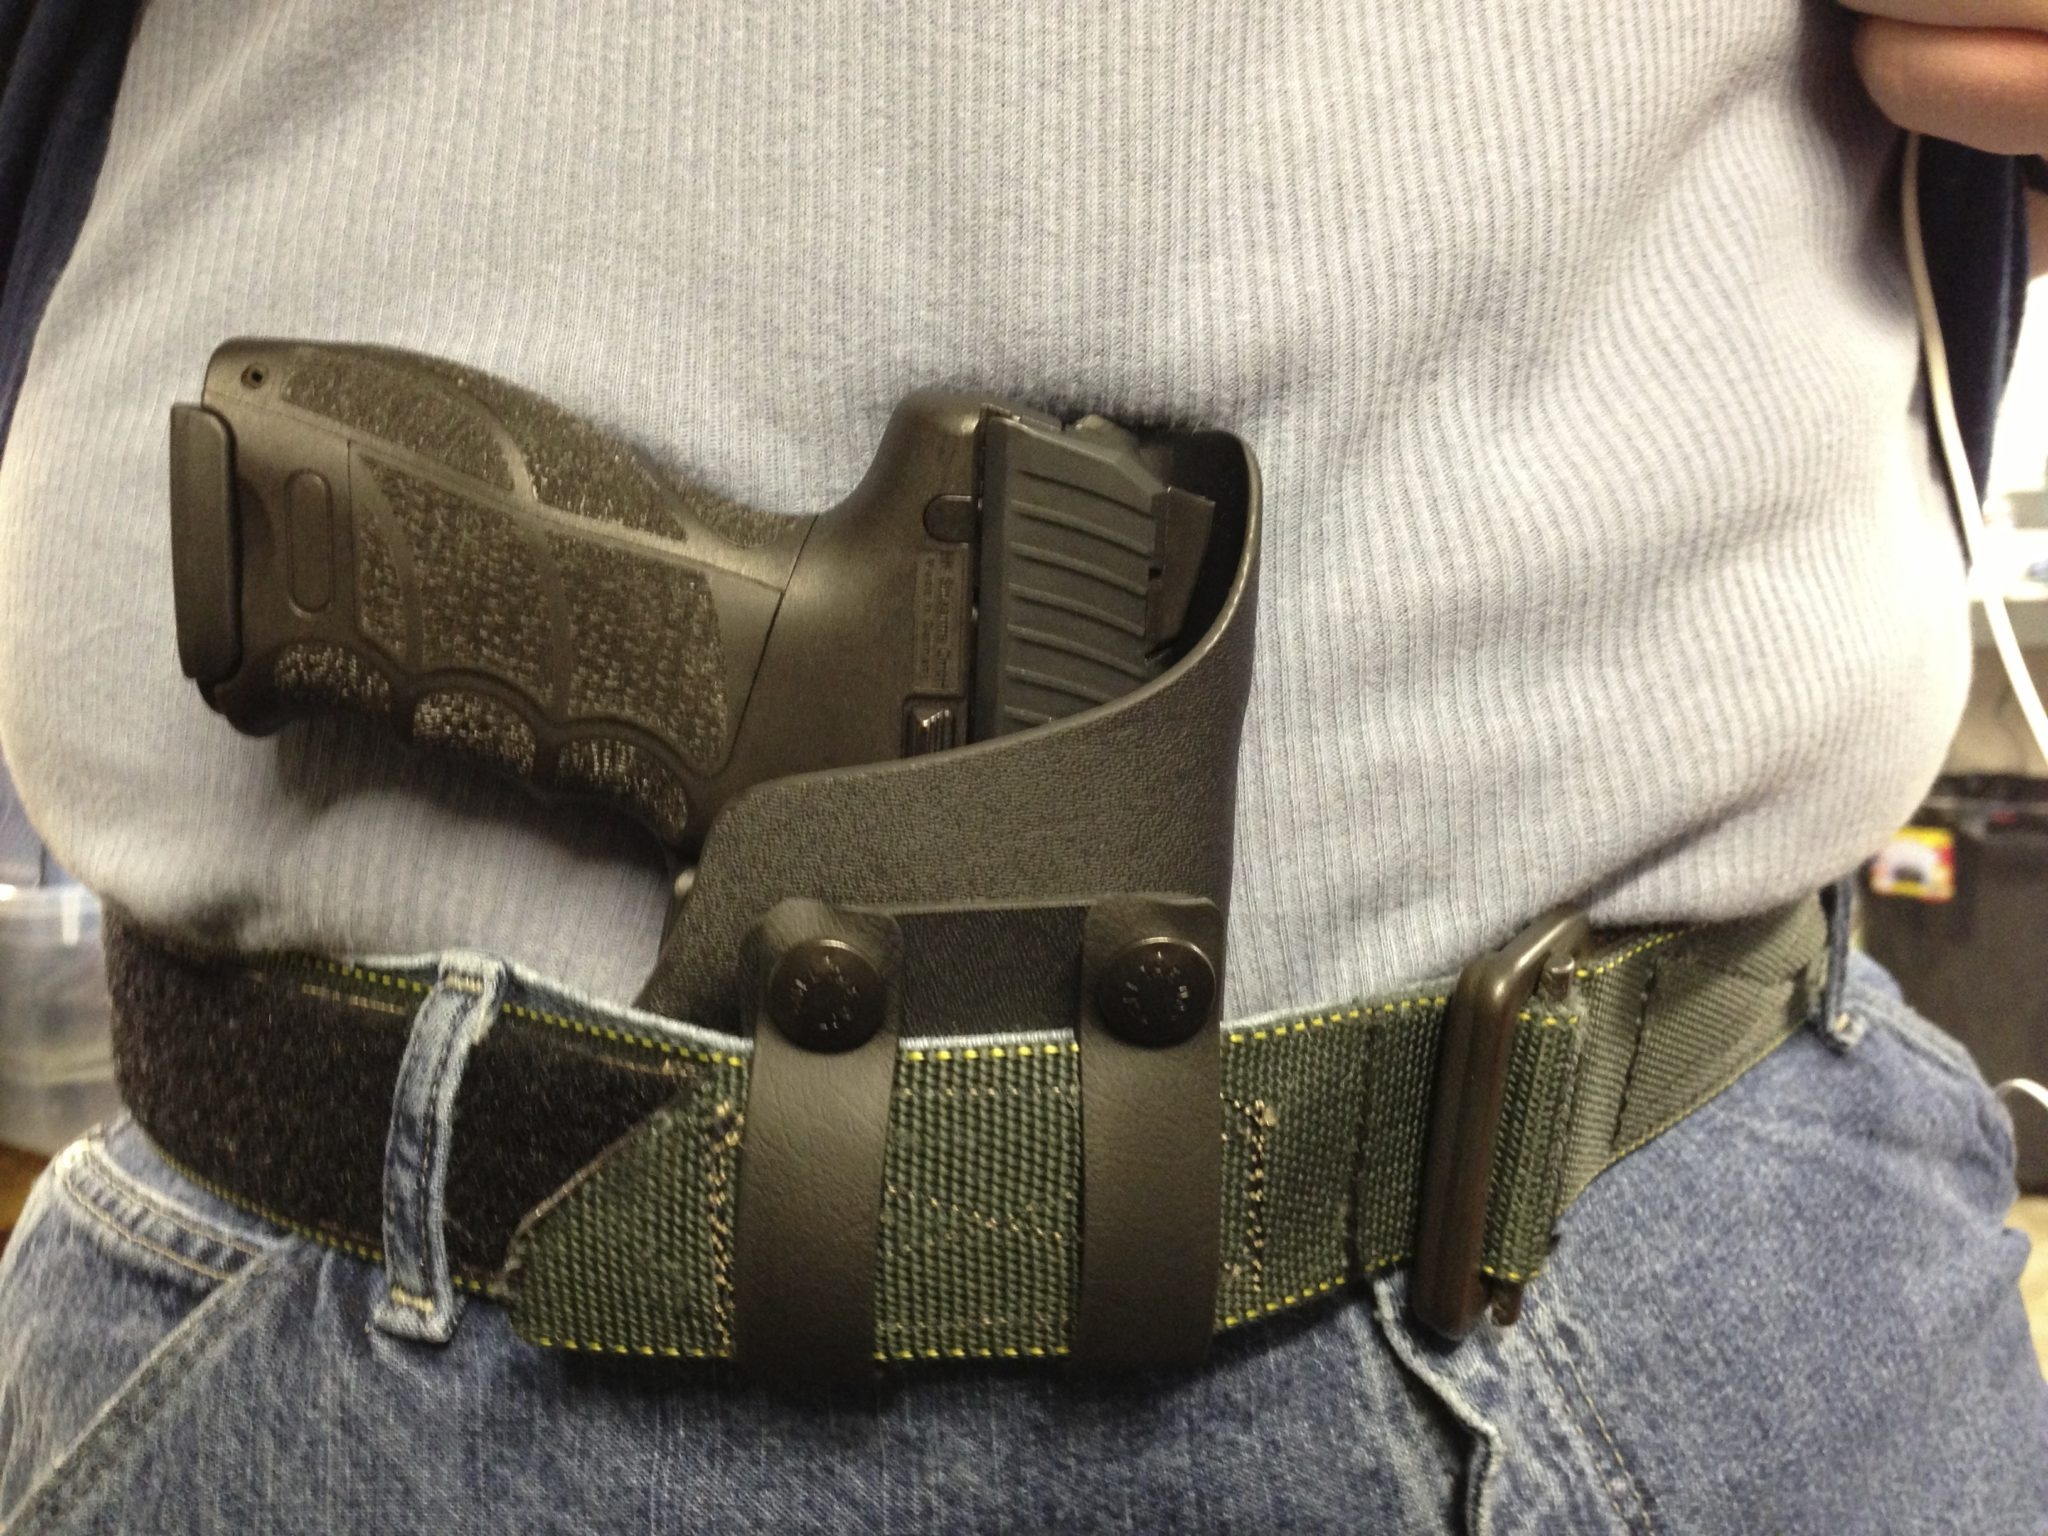 Tuckable Appendix Carry Holster - Archangel 2 you can\'t live without it!